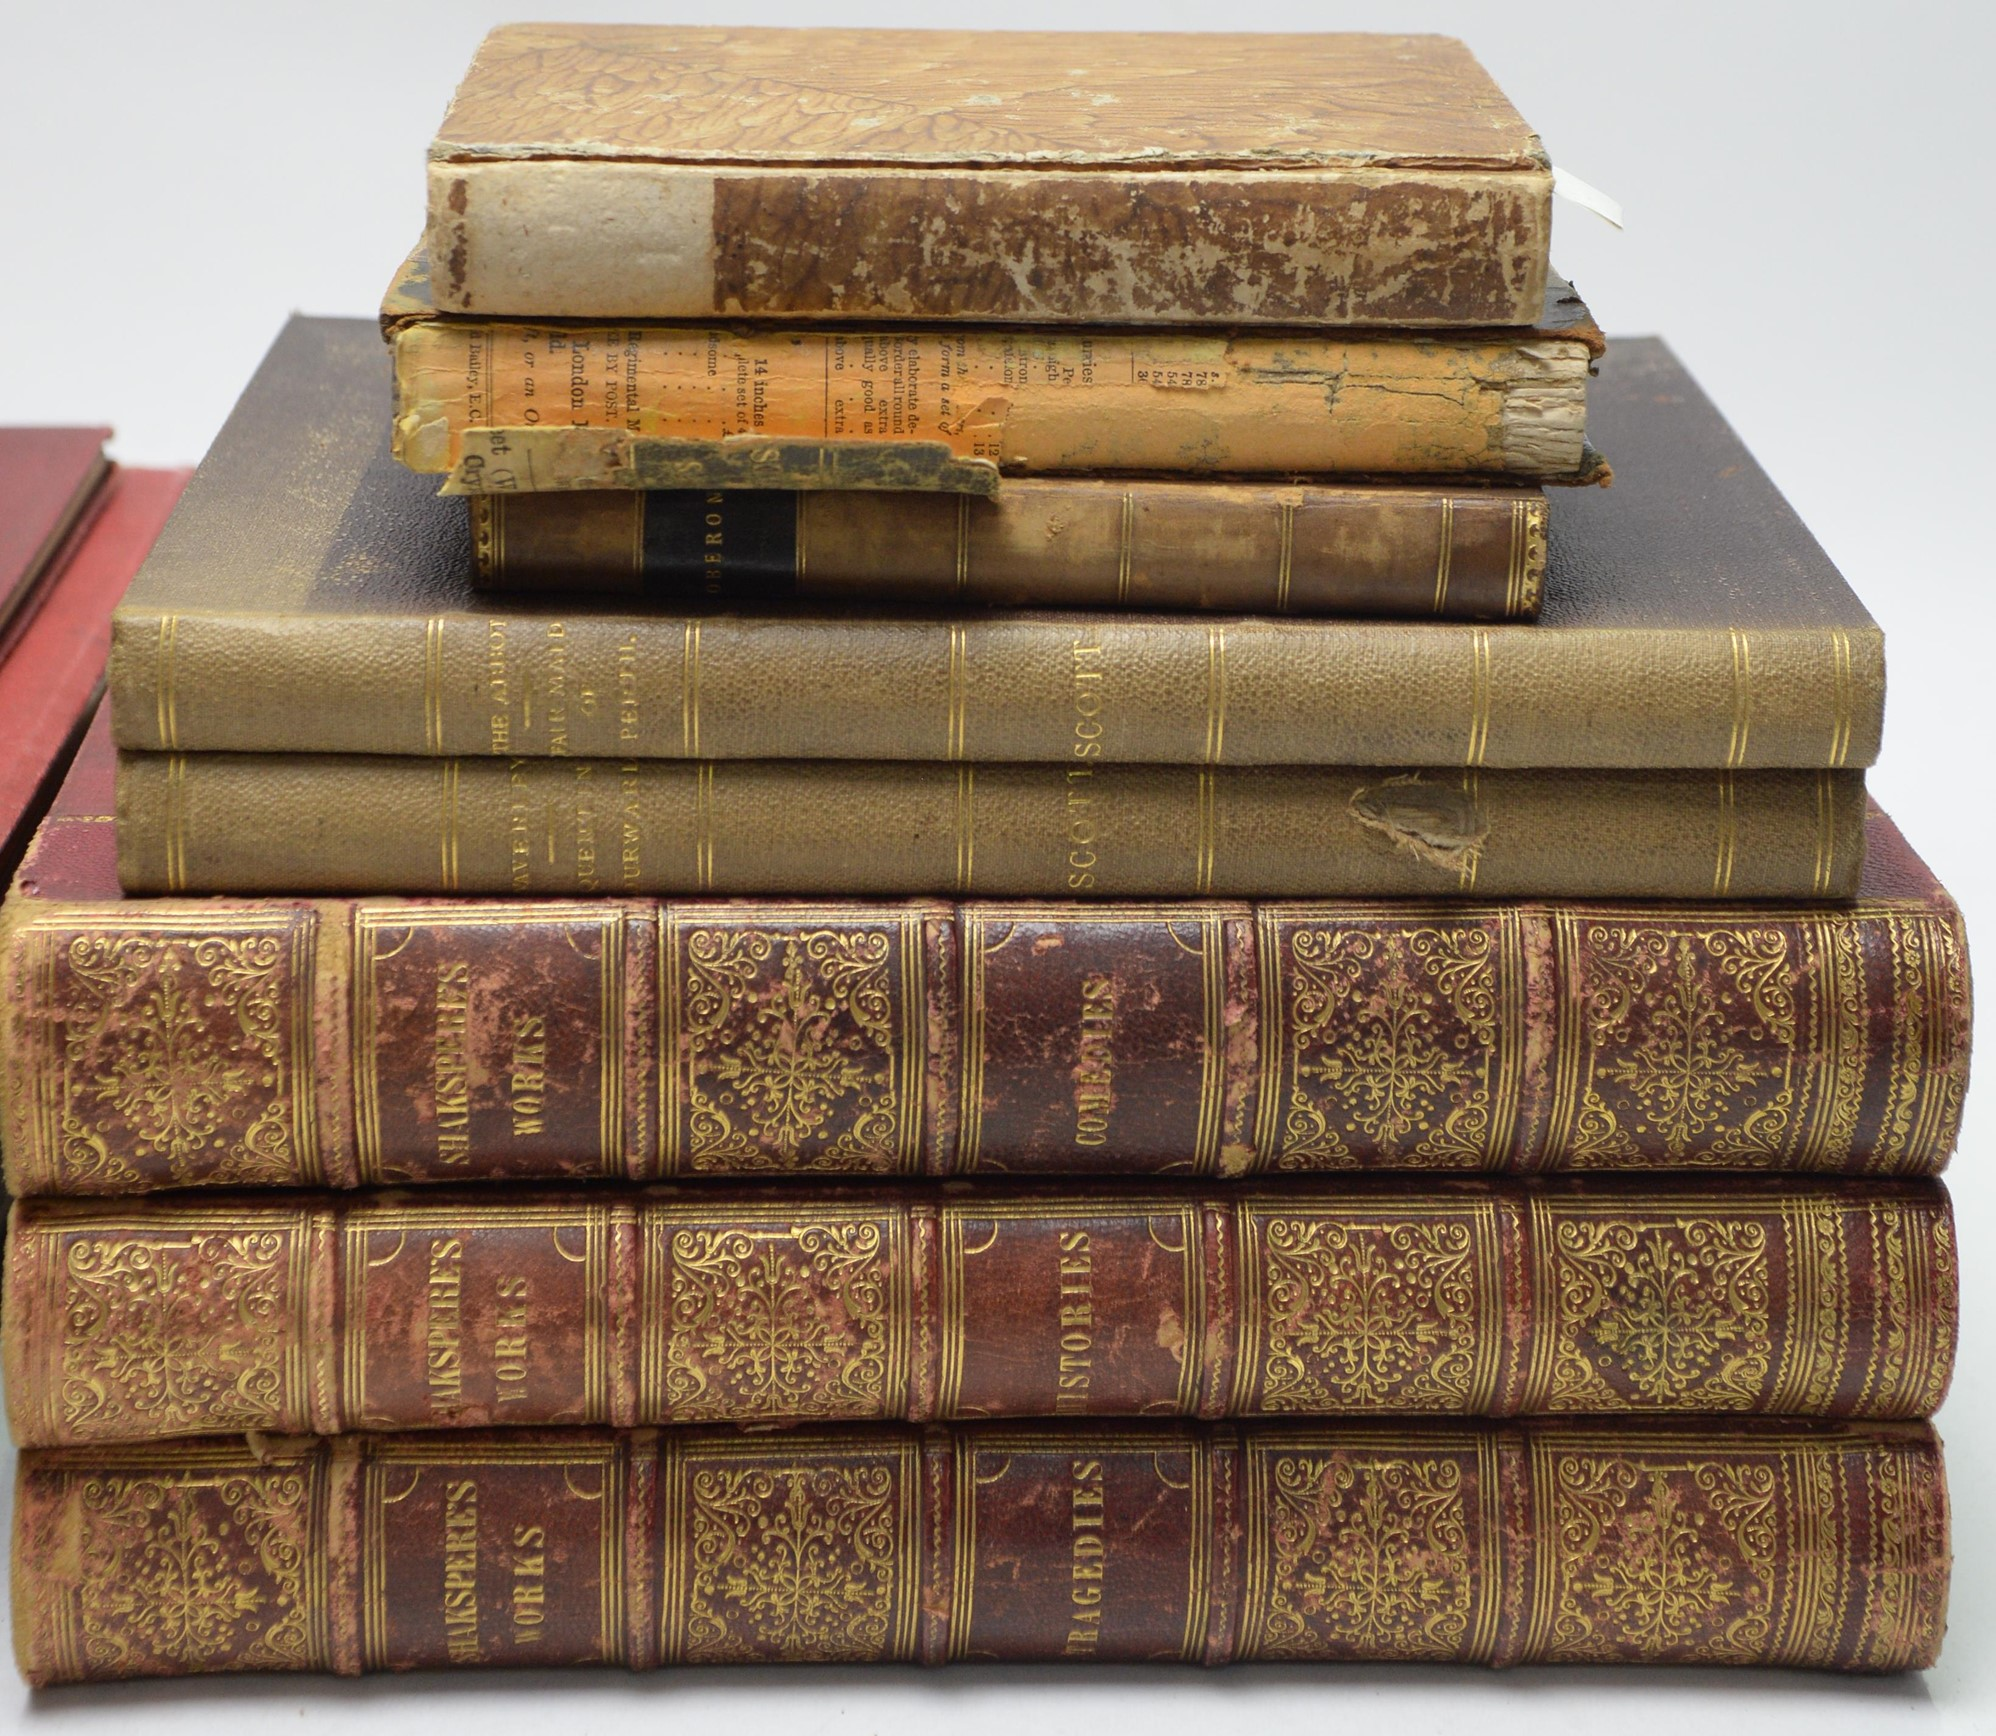 Halliwell (James Orchard), and sundry books. - Image 3 of 3